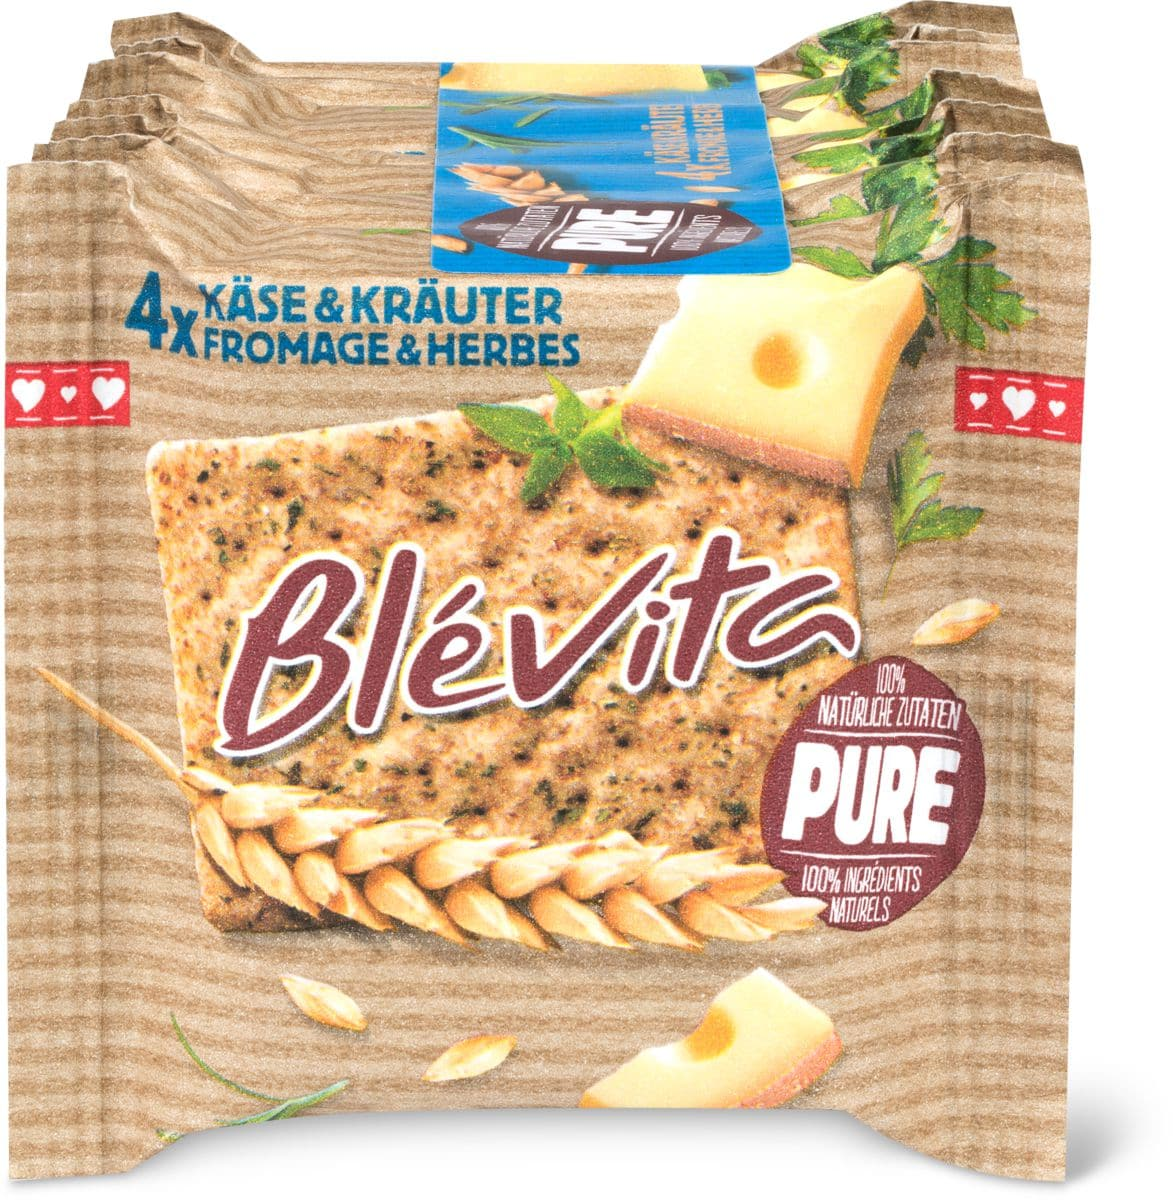 Blévita pure Fromage & herbes